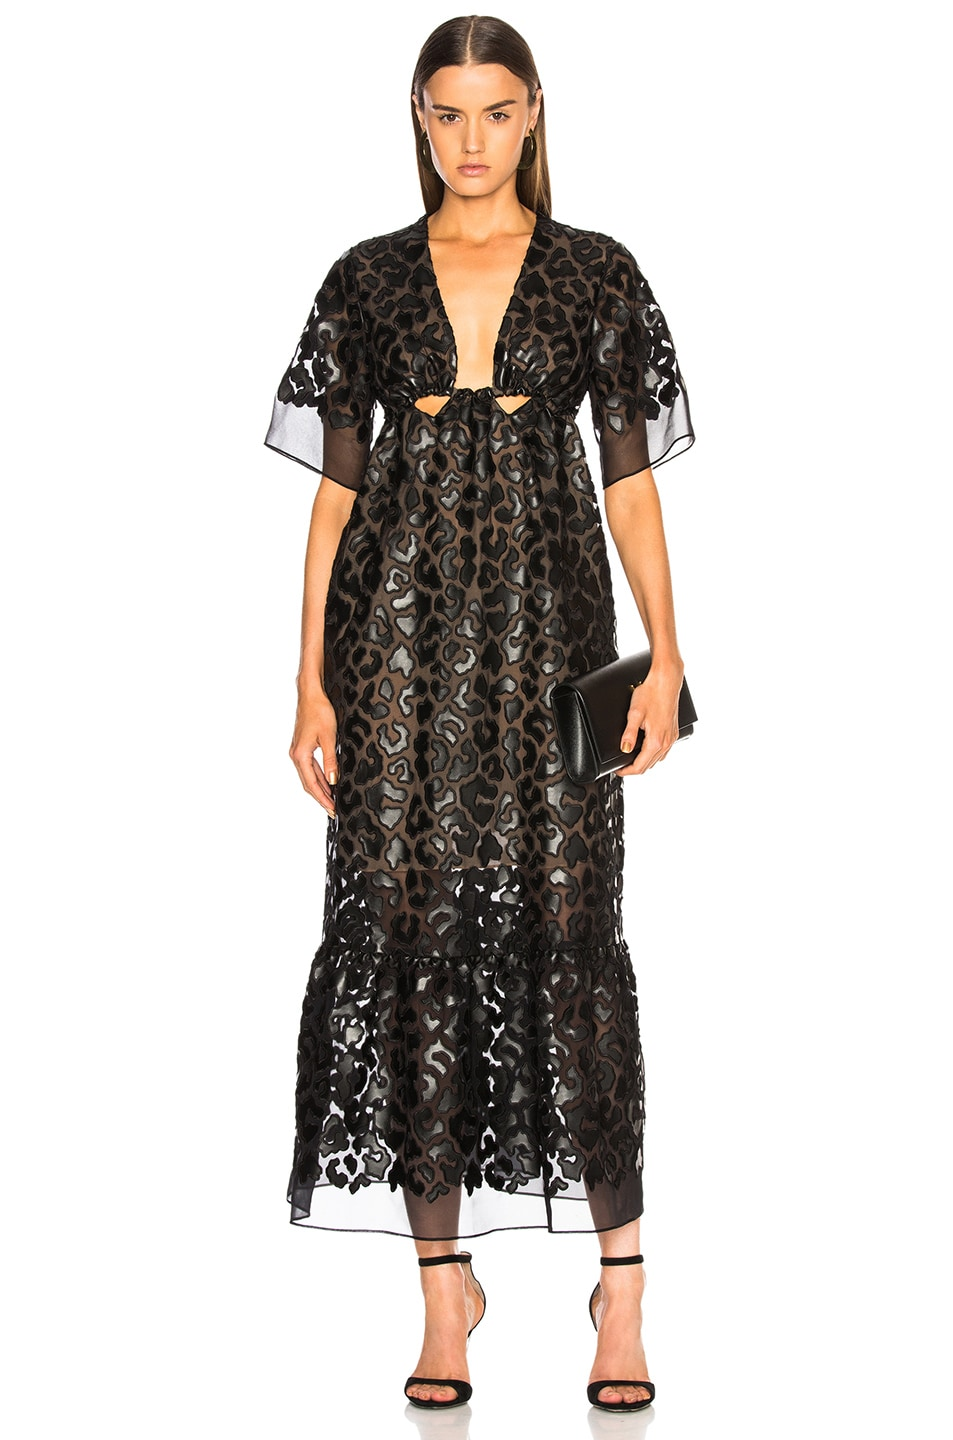 Stella McCartney Leopard Print Burnout Plunging Gown in Black